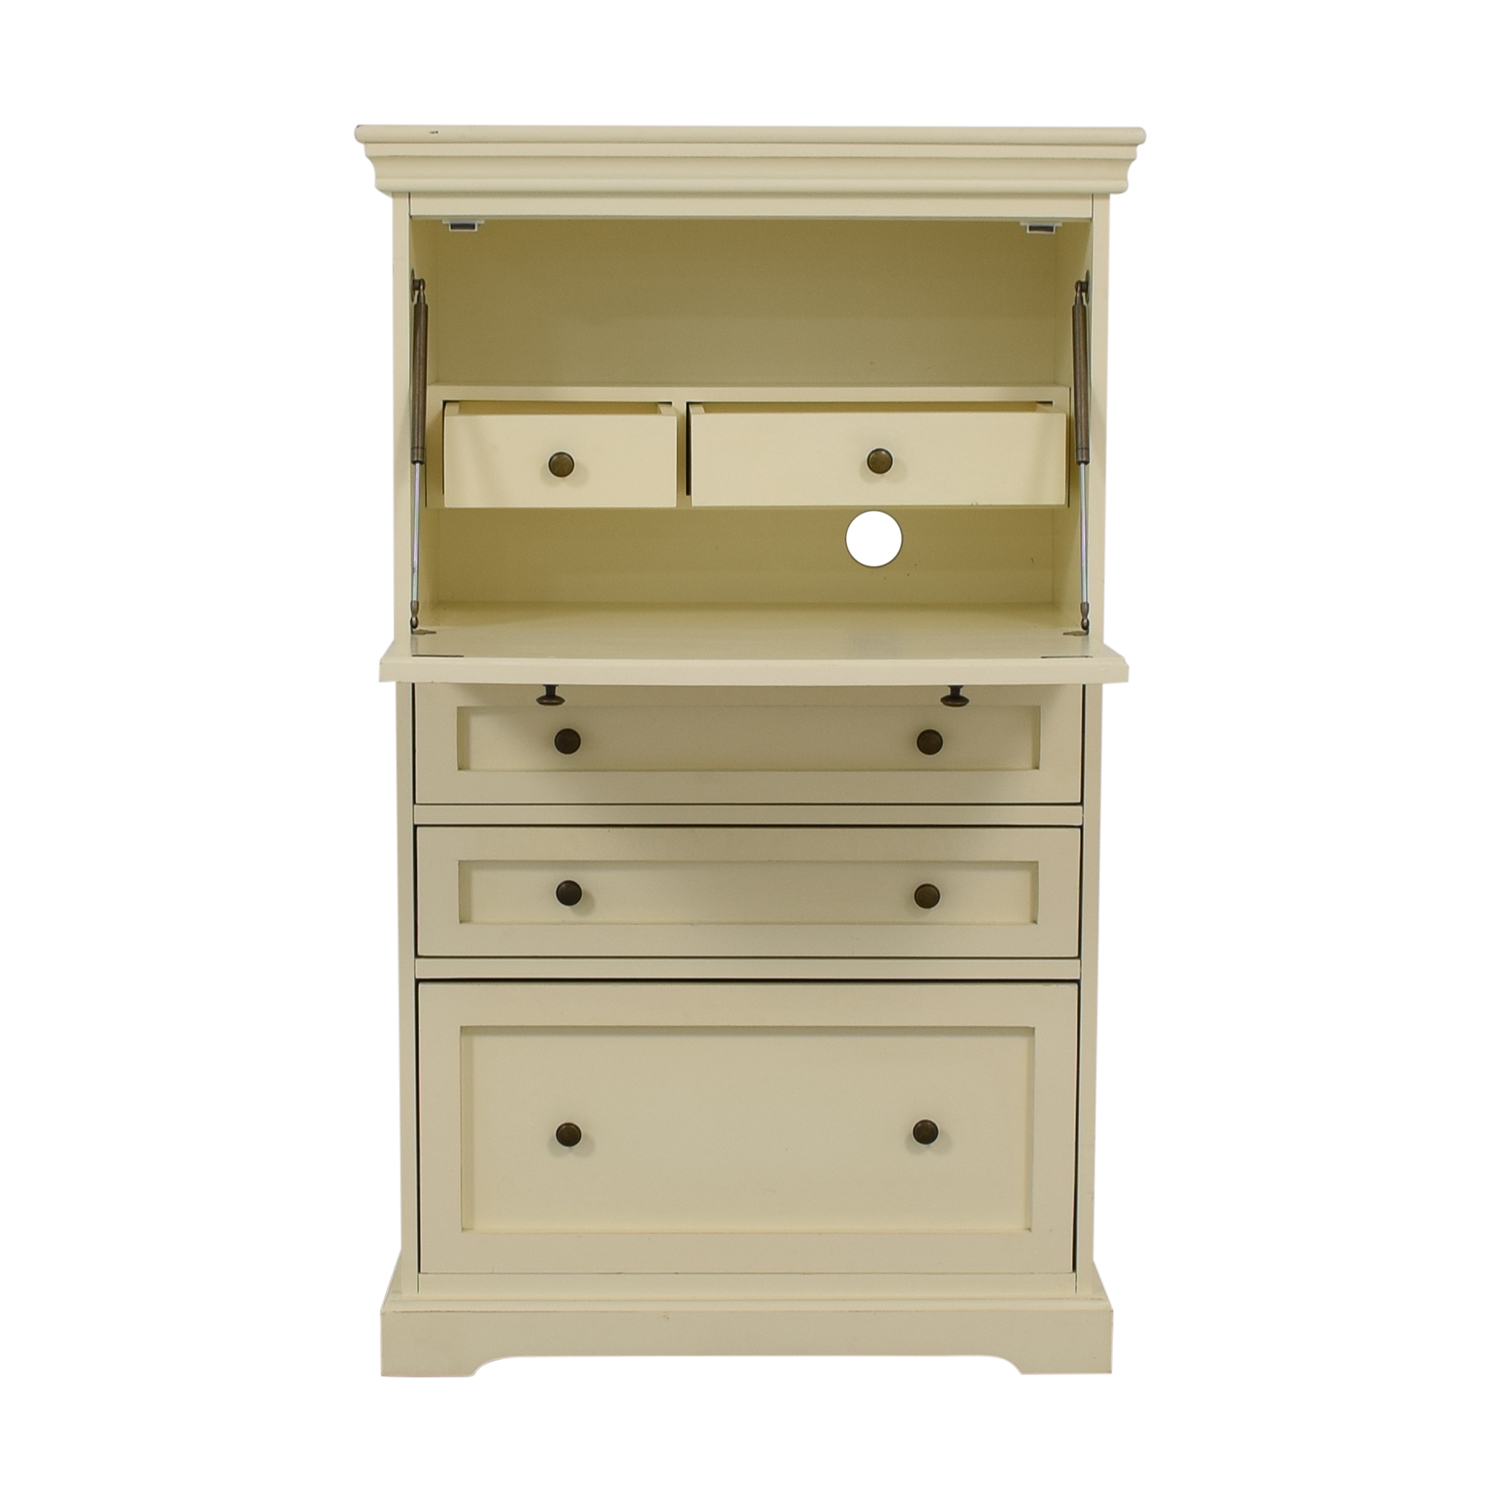 Ballard Designs Ballard Designs Eastman Secretary Desk and Dresser coupon